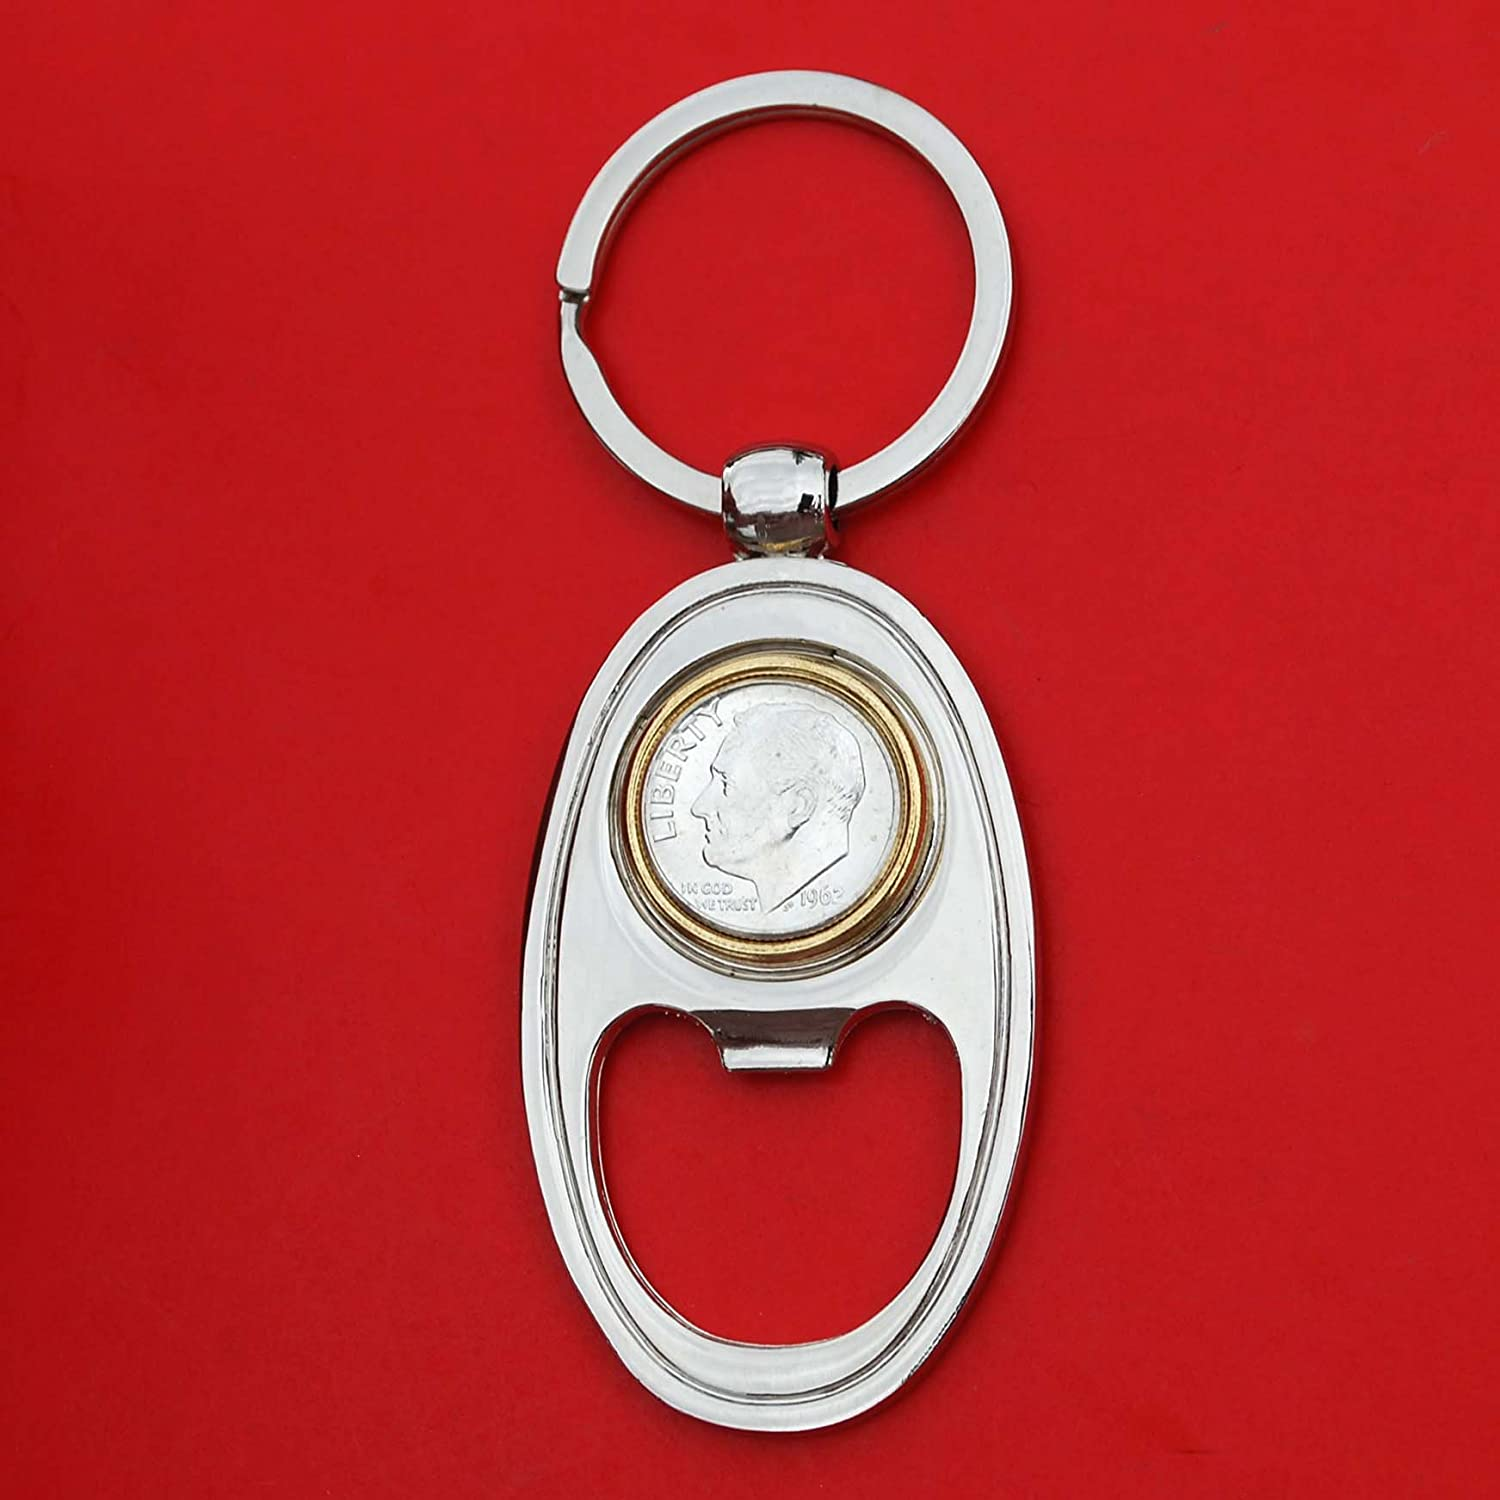 US 1962 Roosevelt Dime 90/% Silver 10 Cent Gem BU Uncirculated Coin Gold Silver Two Tone Key Chain Ring Bottle Opener NEW